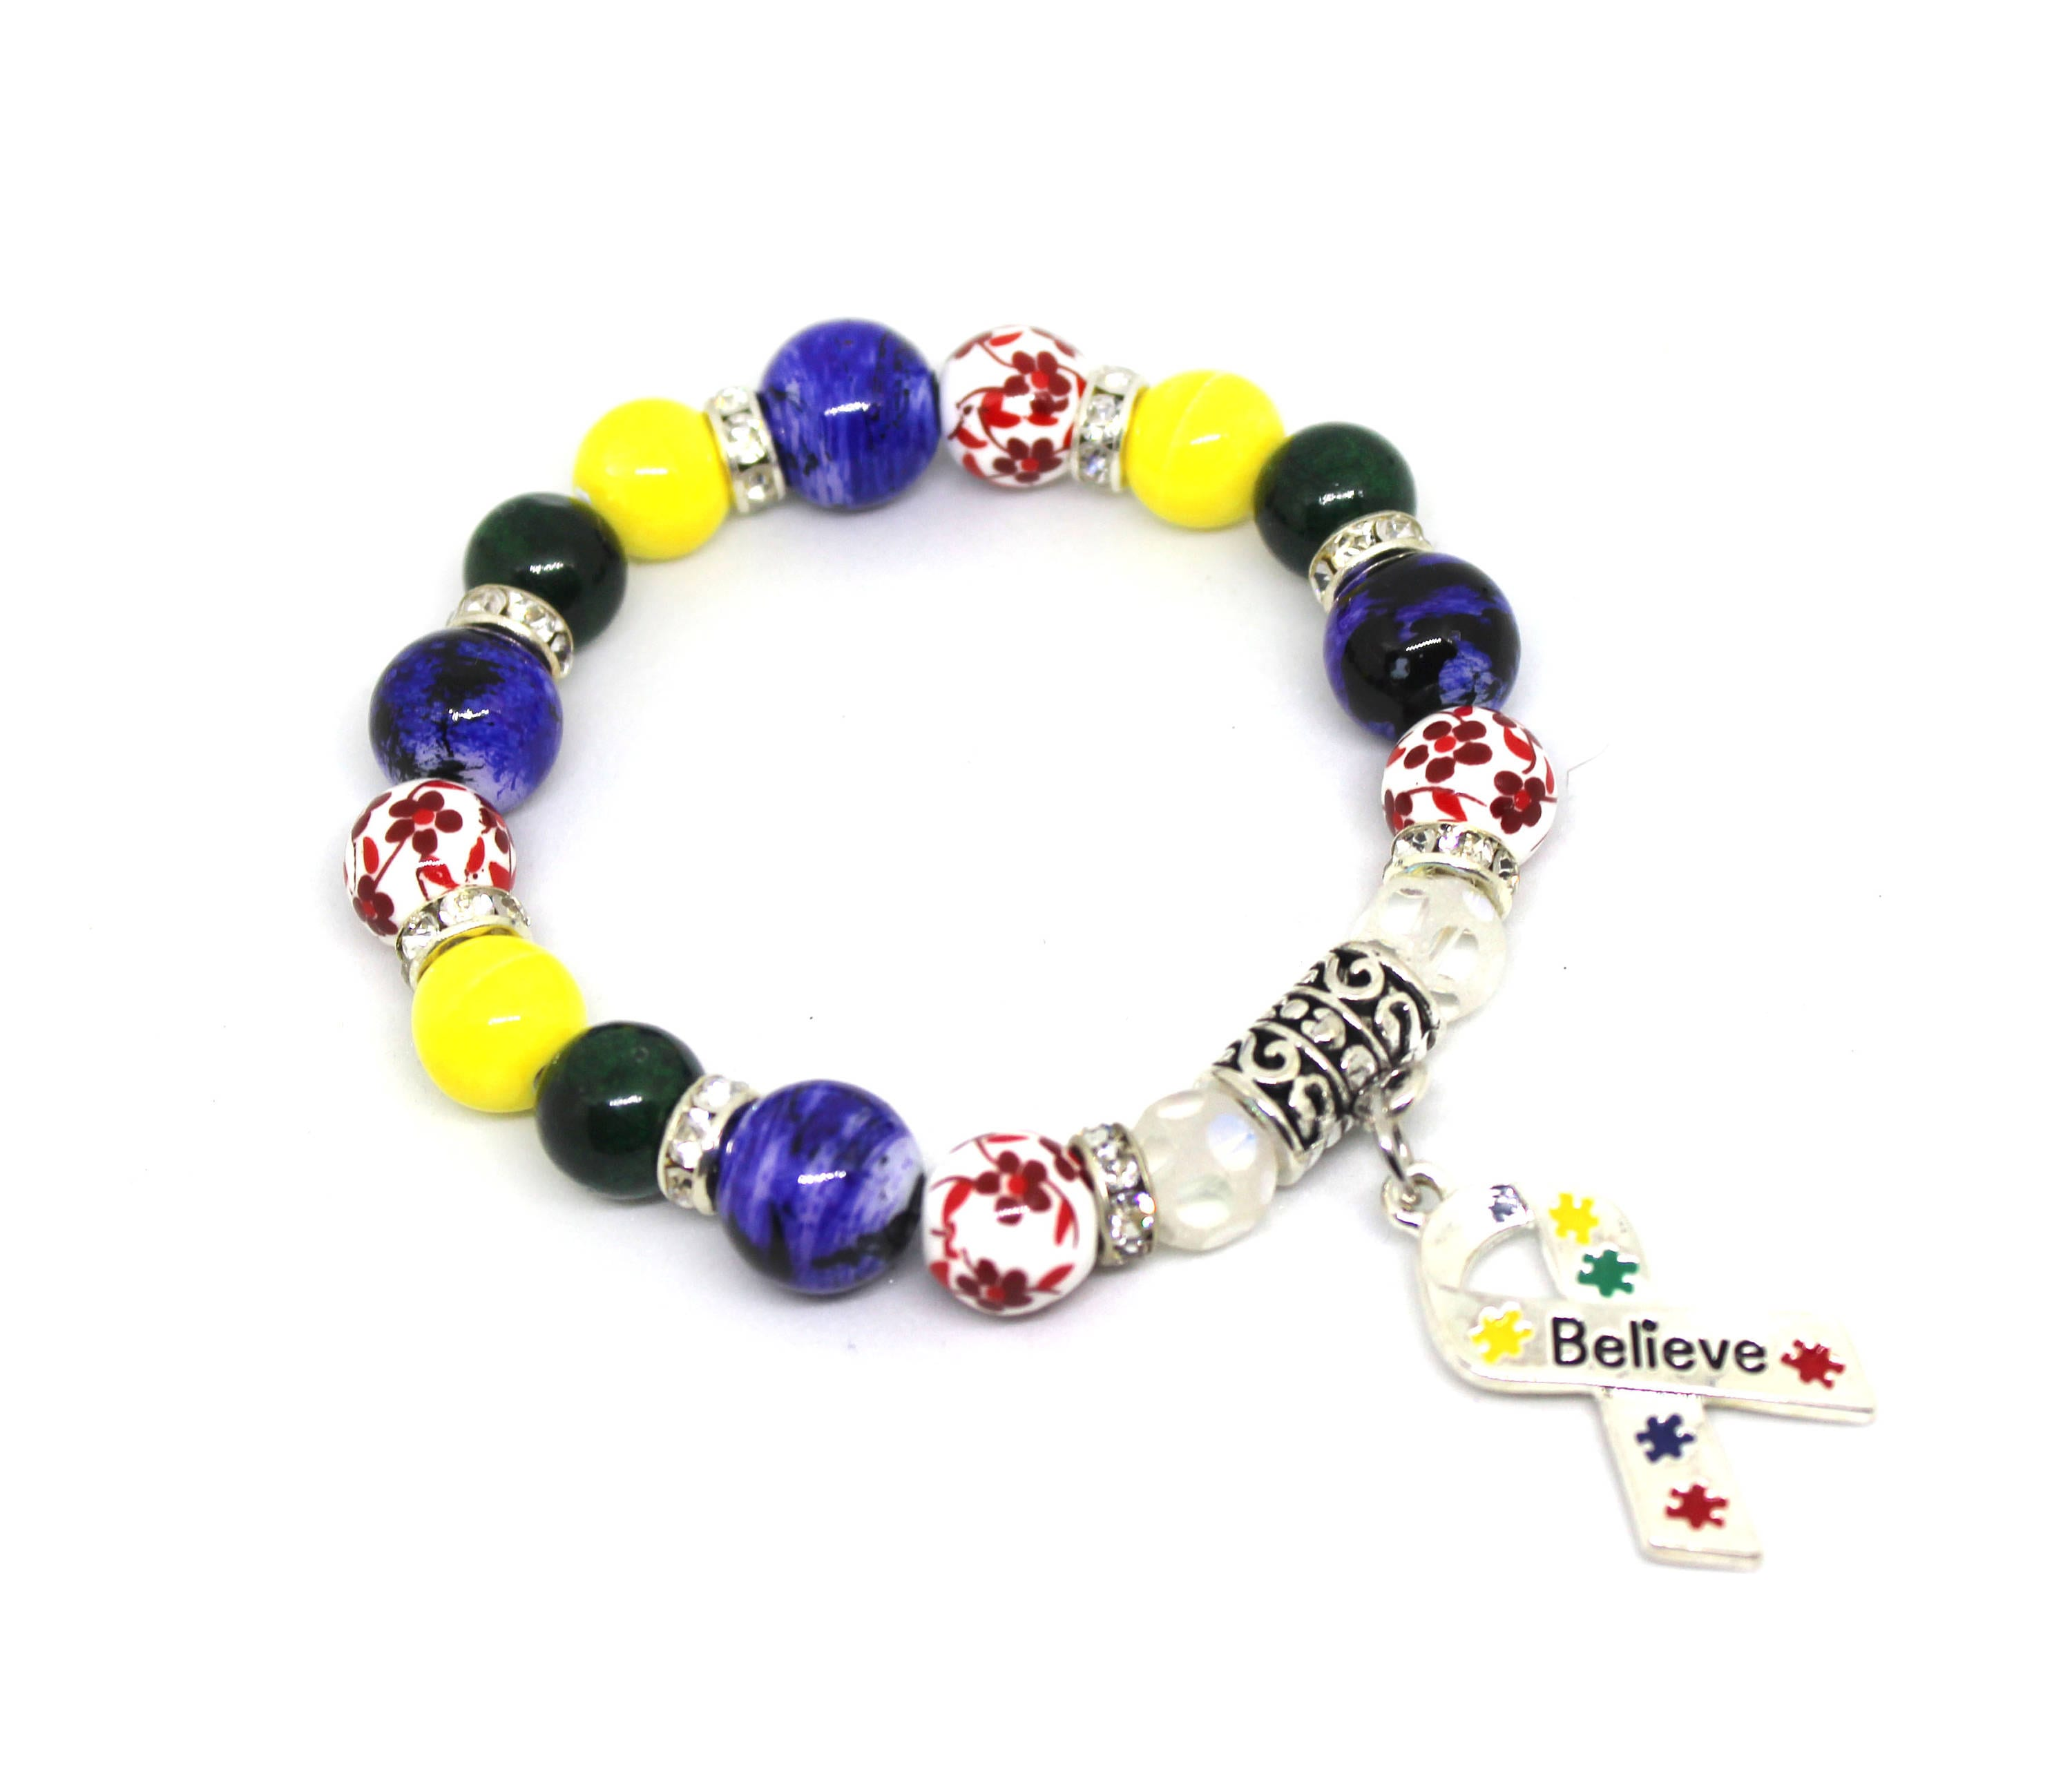 iheartdogs talking crackle instagram on autism bracelet com people product awareness